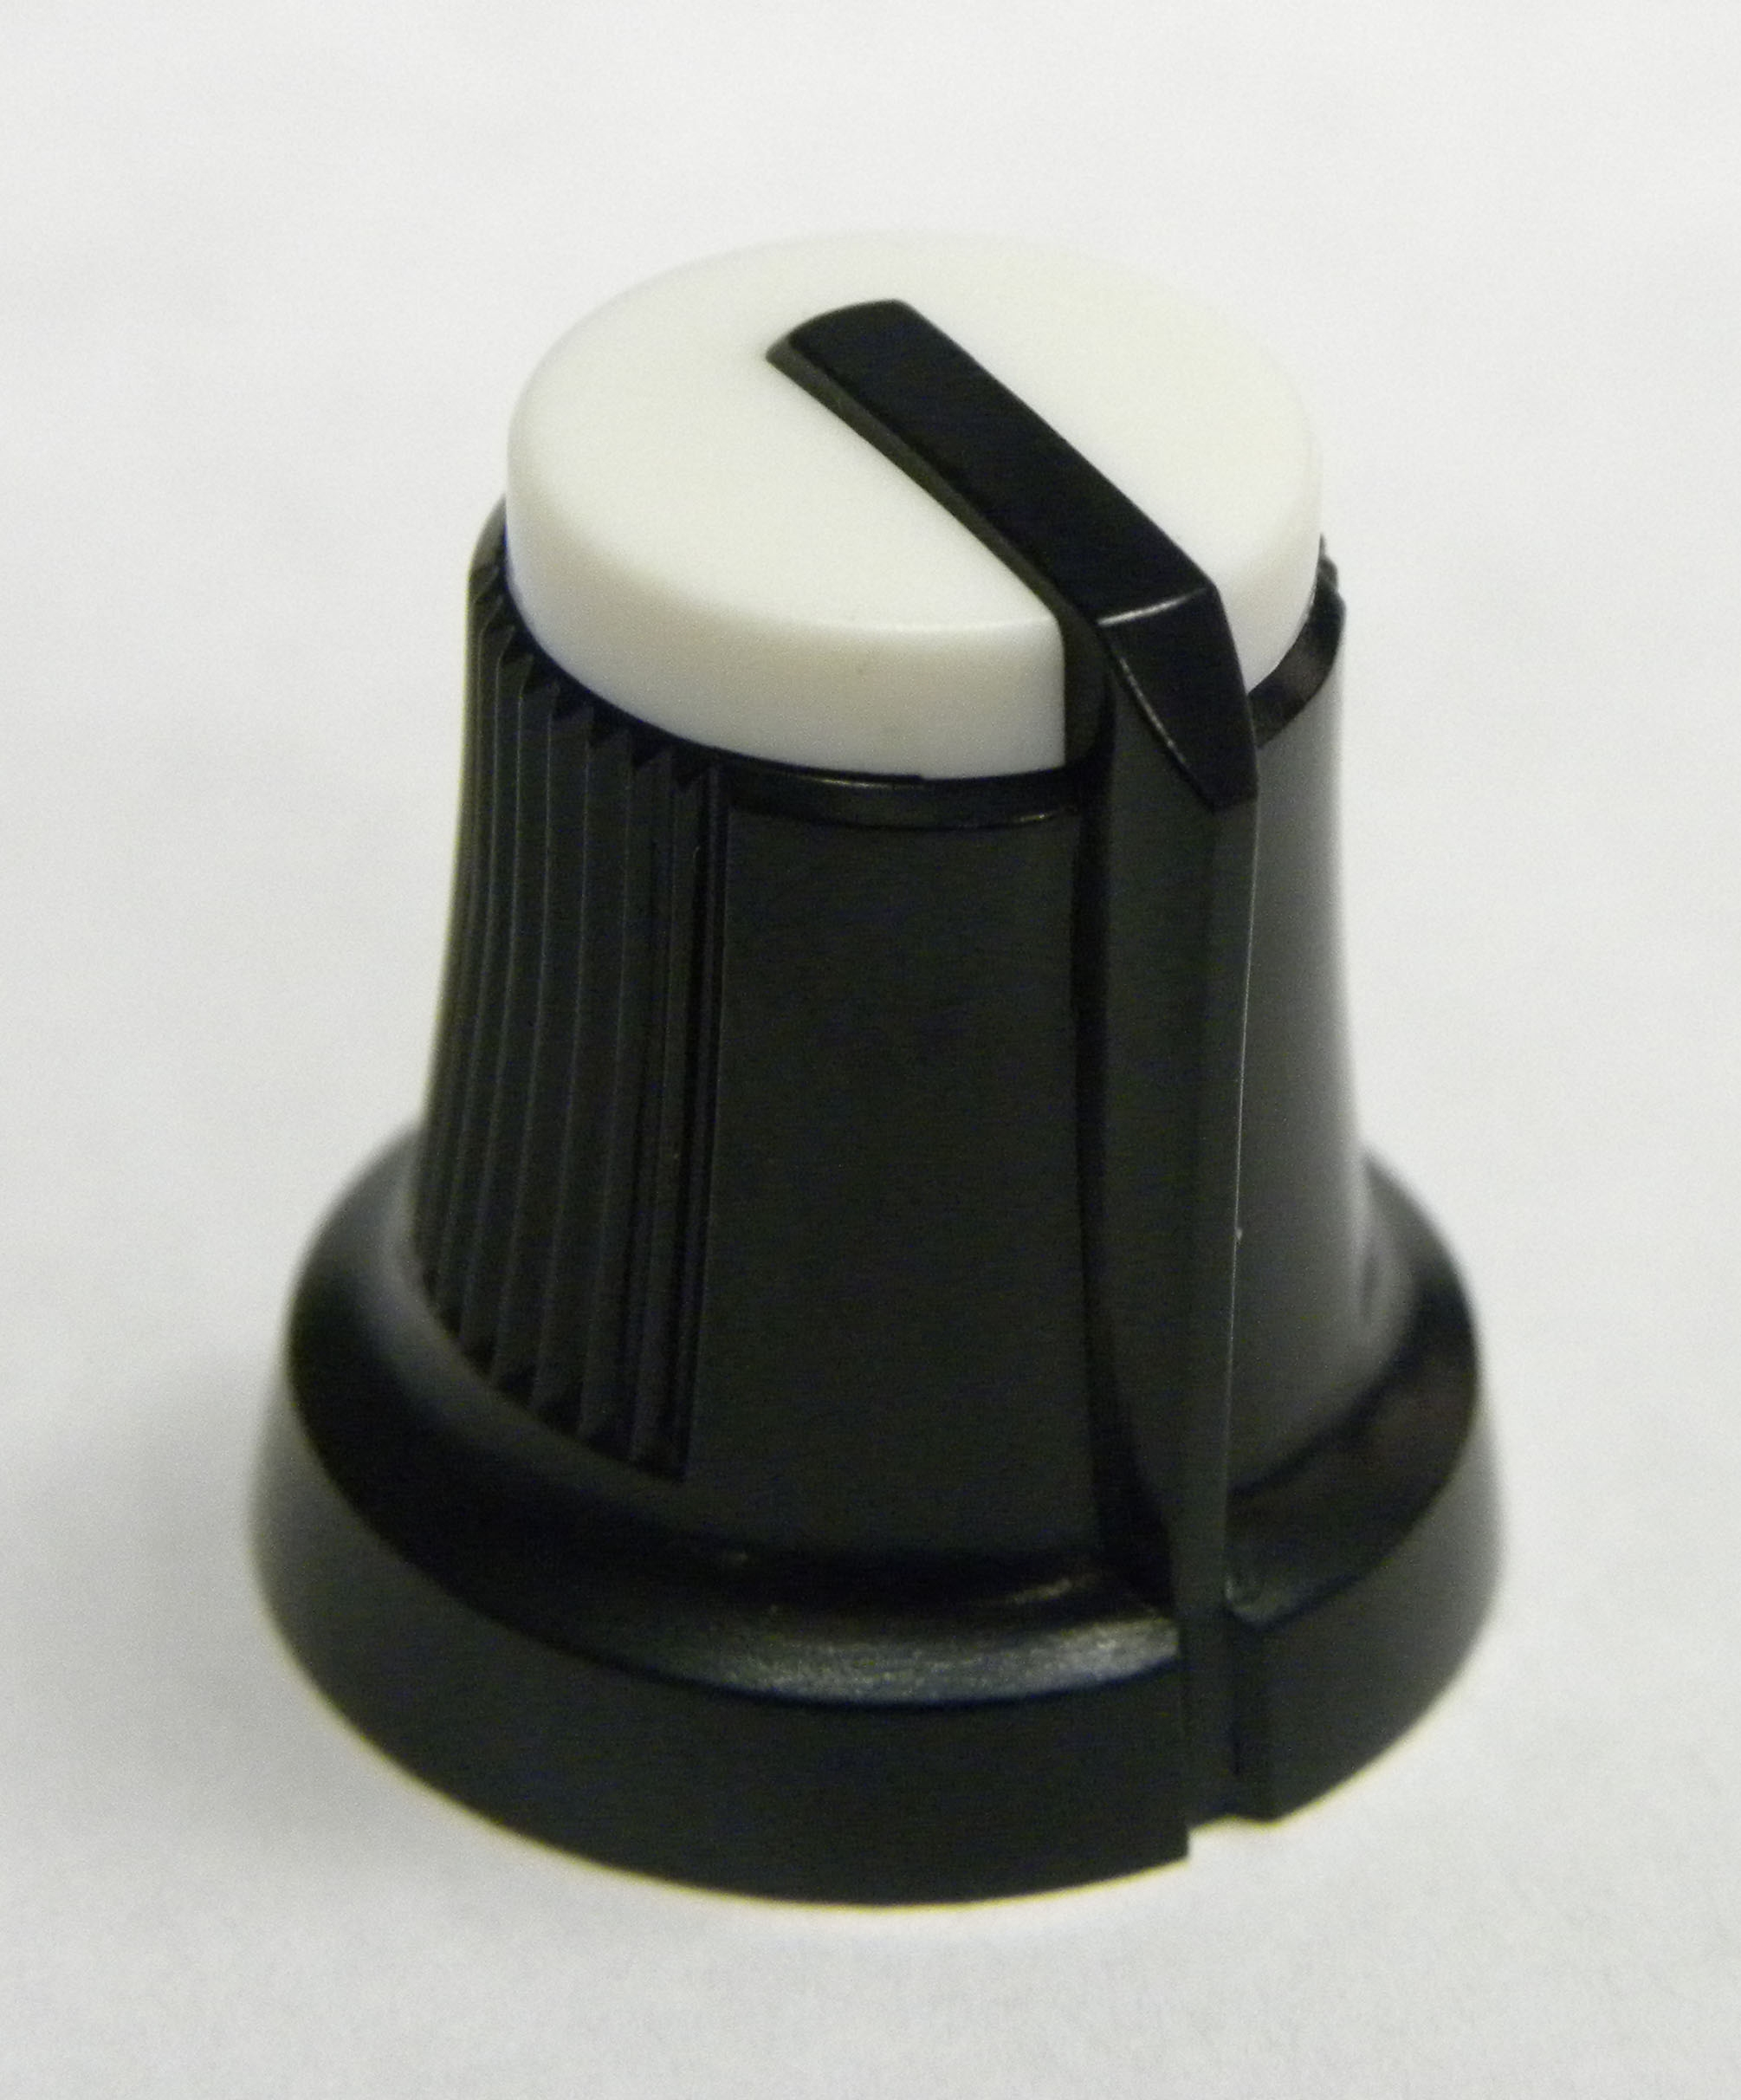 akai-mpc-2500-5000-black-knob-white-top-fits-older-models